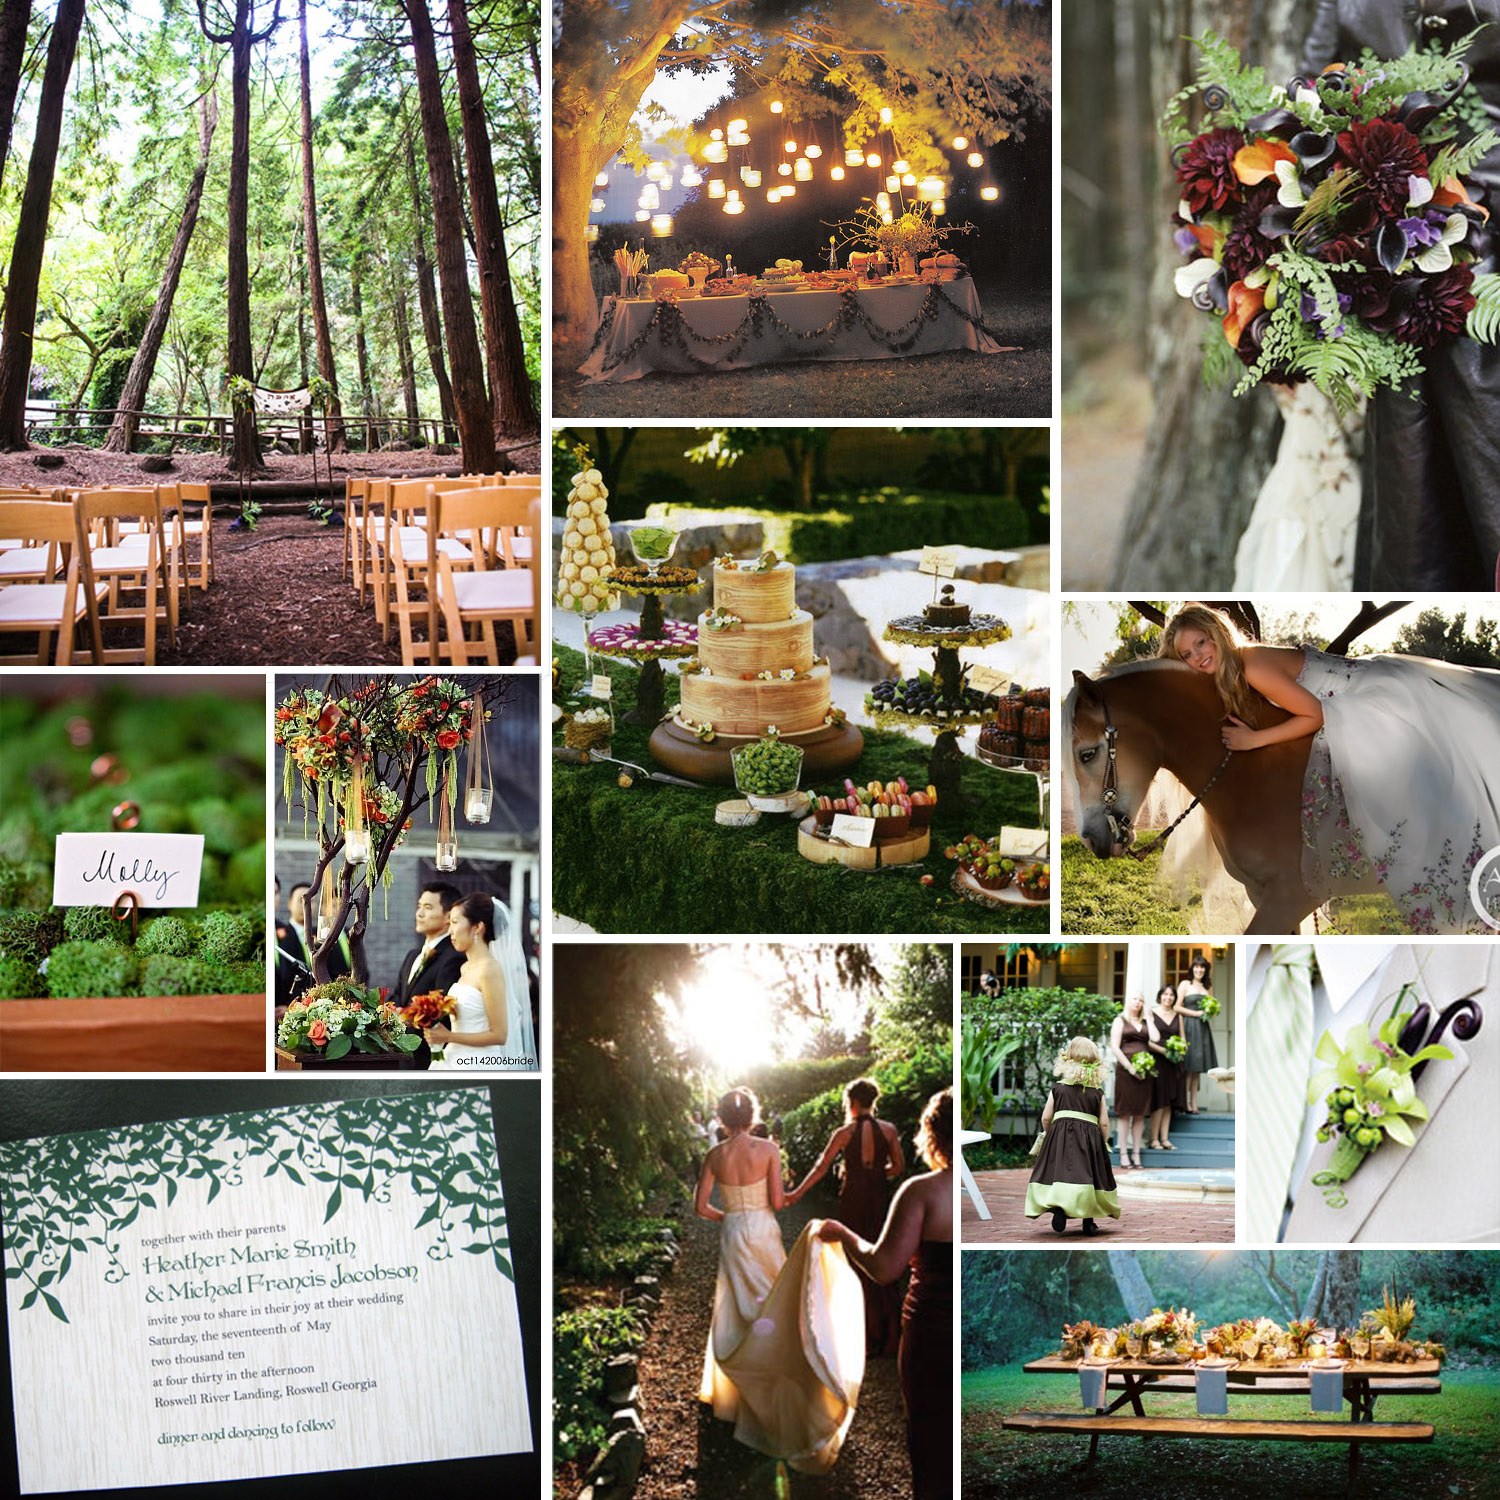 http://1.bp.blogspot.com/-KLQgB0IaNtI/T7A4Wc7XiYI/AAAAAAAABdc/CRUDEWClAas/s1600/enchanted-forest-wedding-inspiration-board.jpg